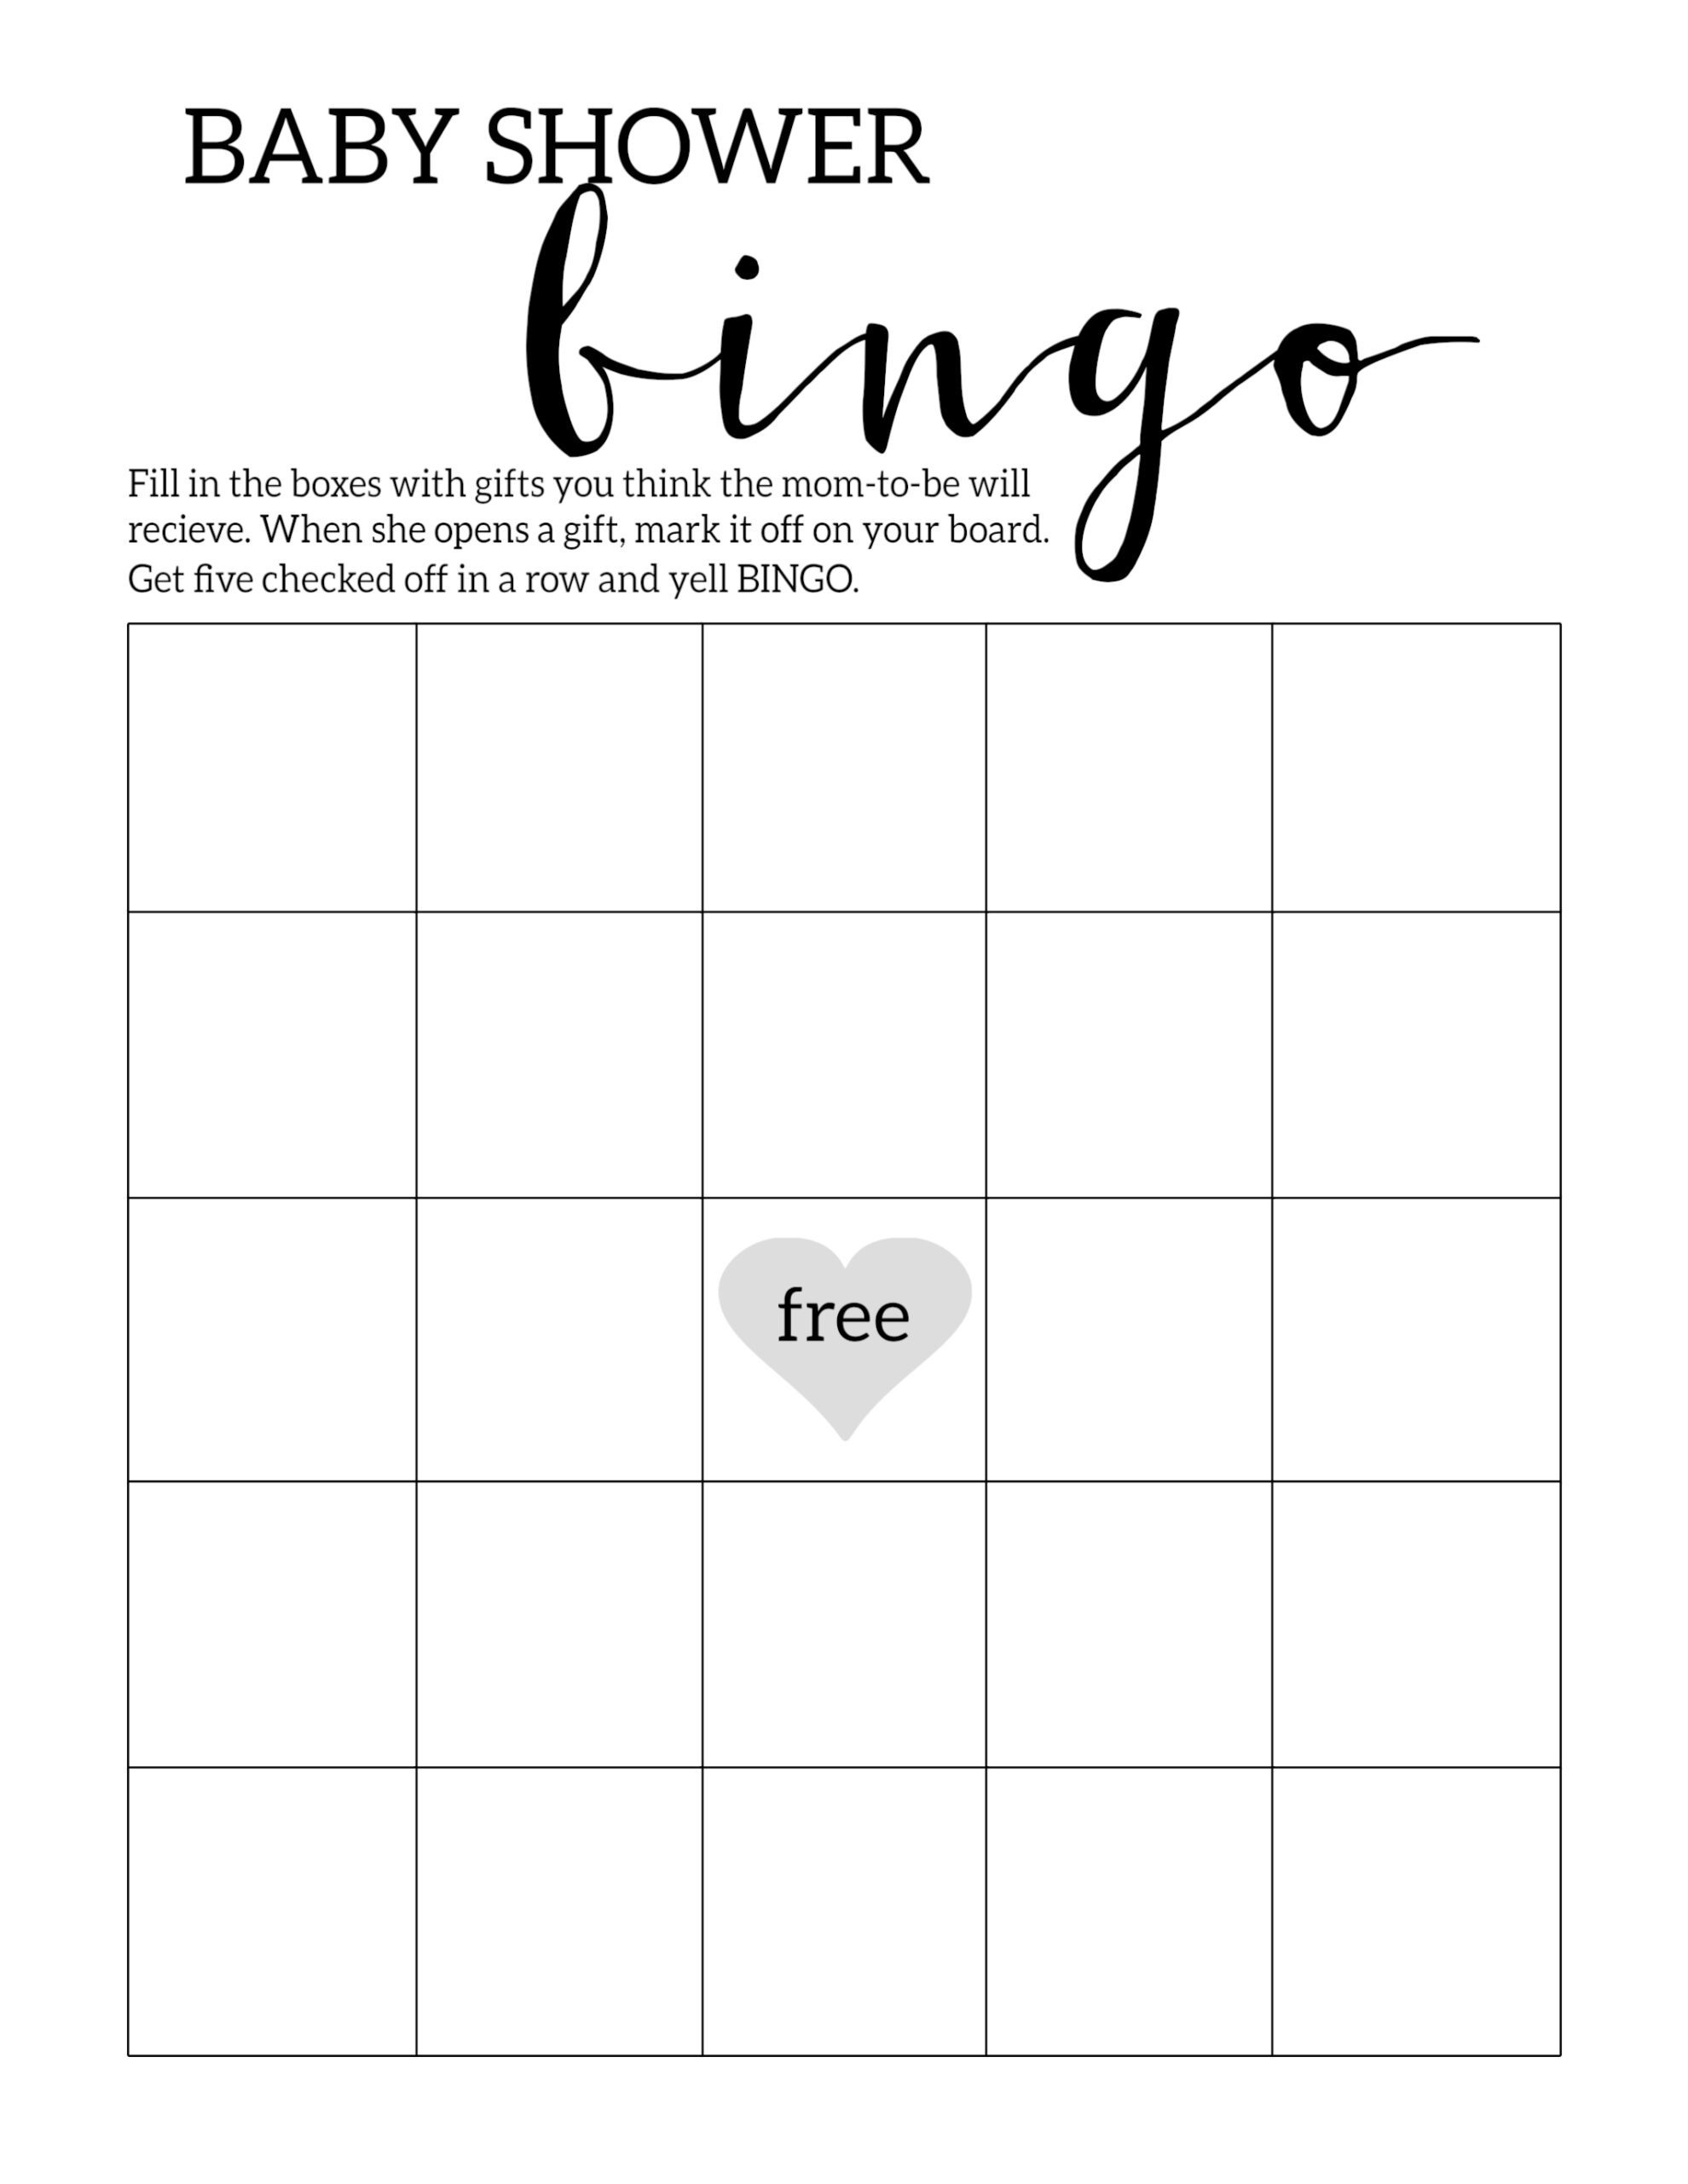 Baby Shower Bingo Printable Cards Template - Paper Trail Design - Free Printable Bingo Games